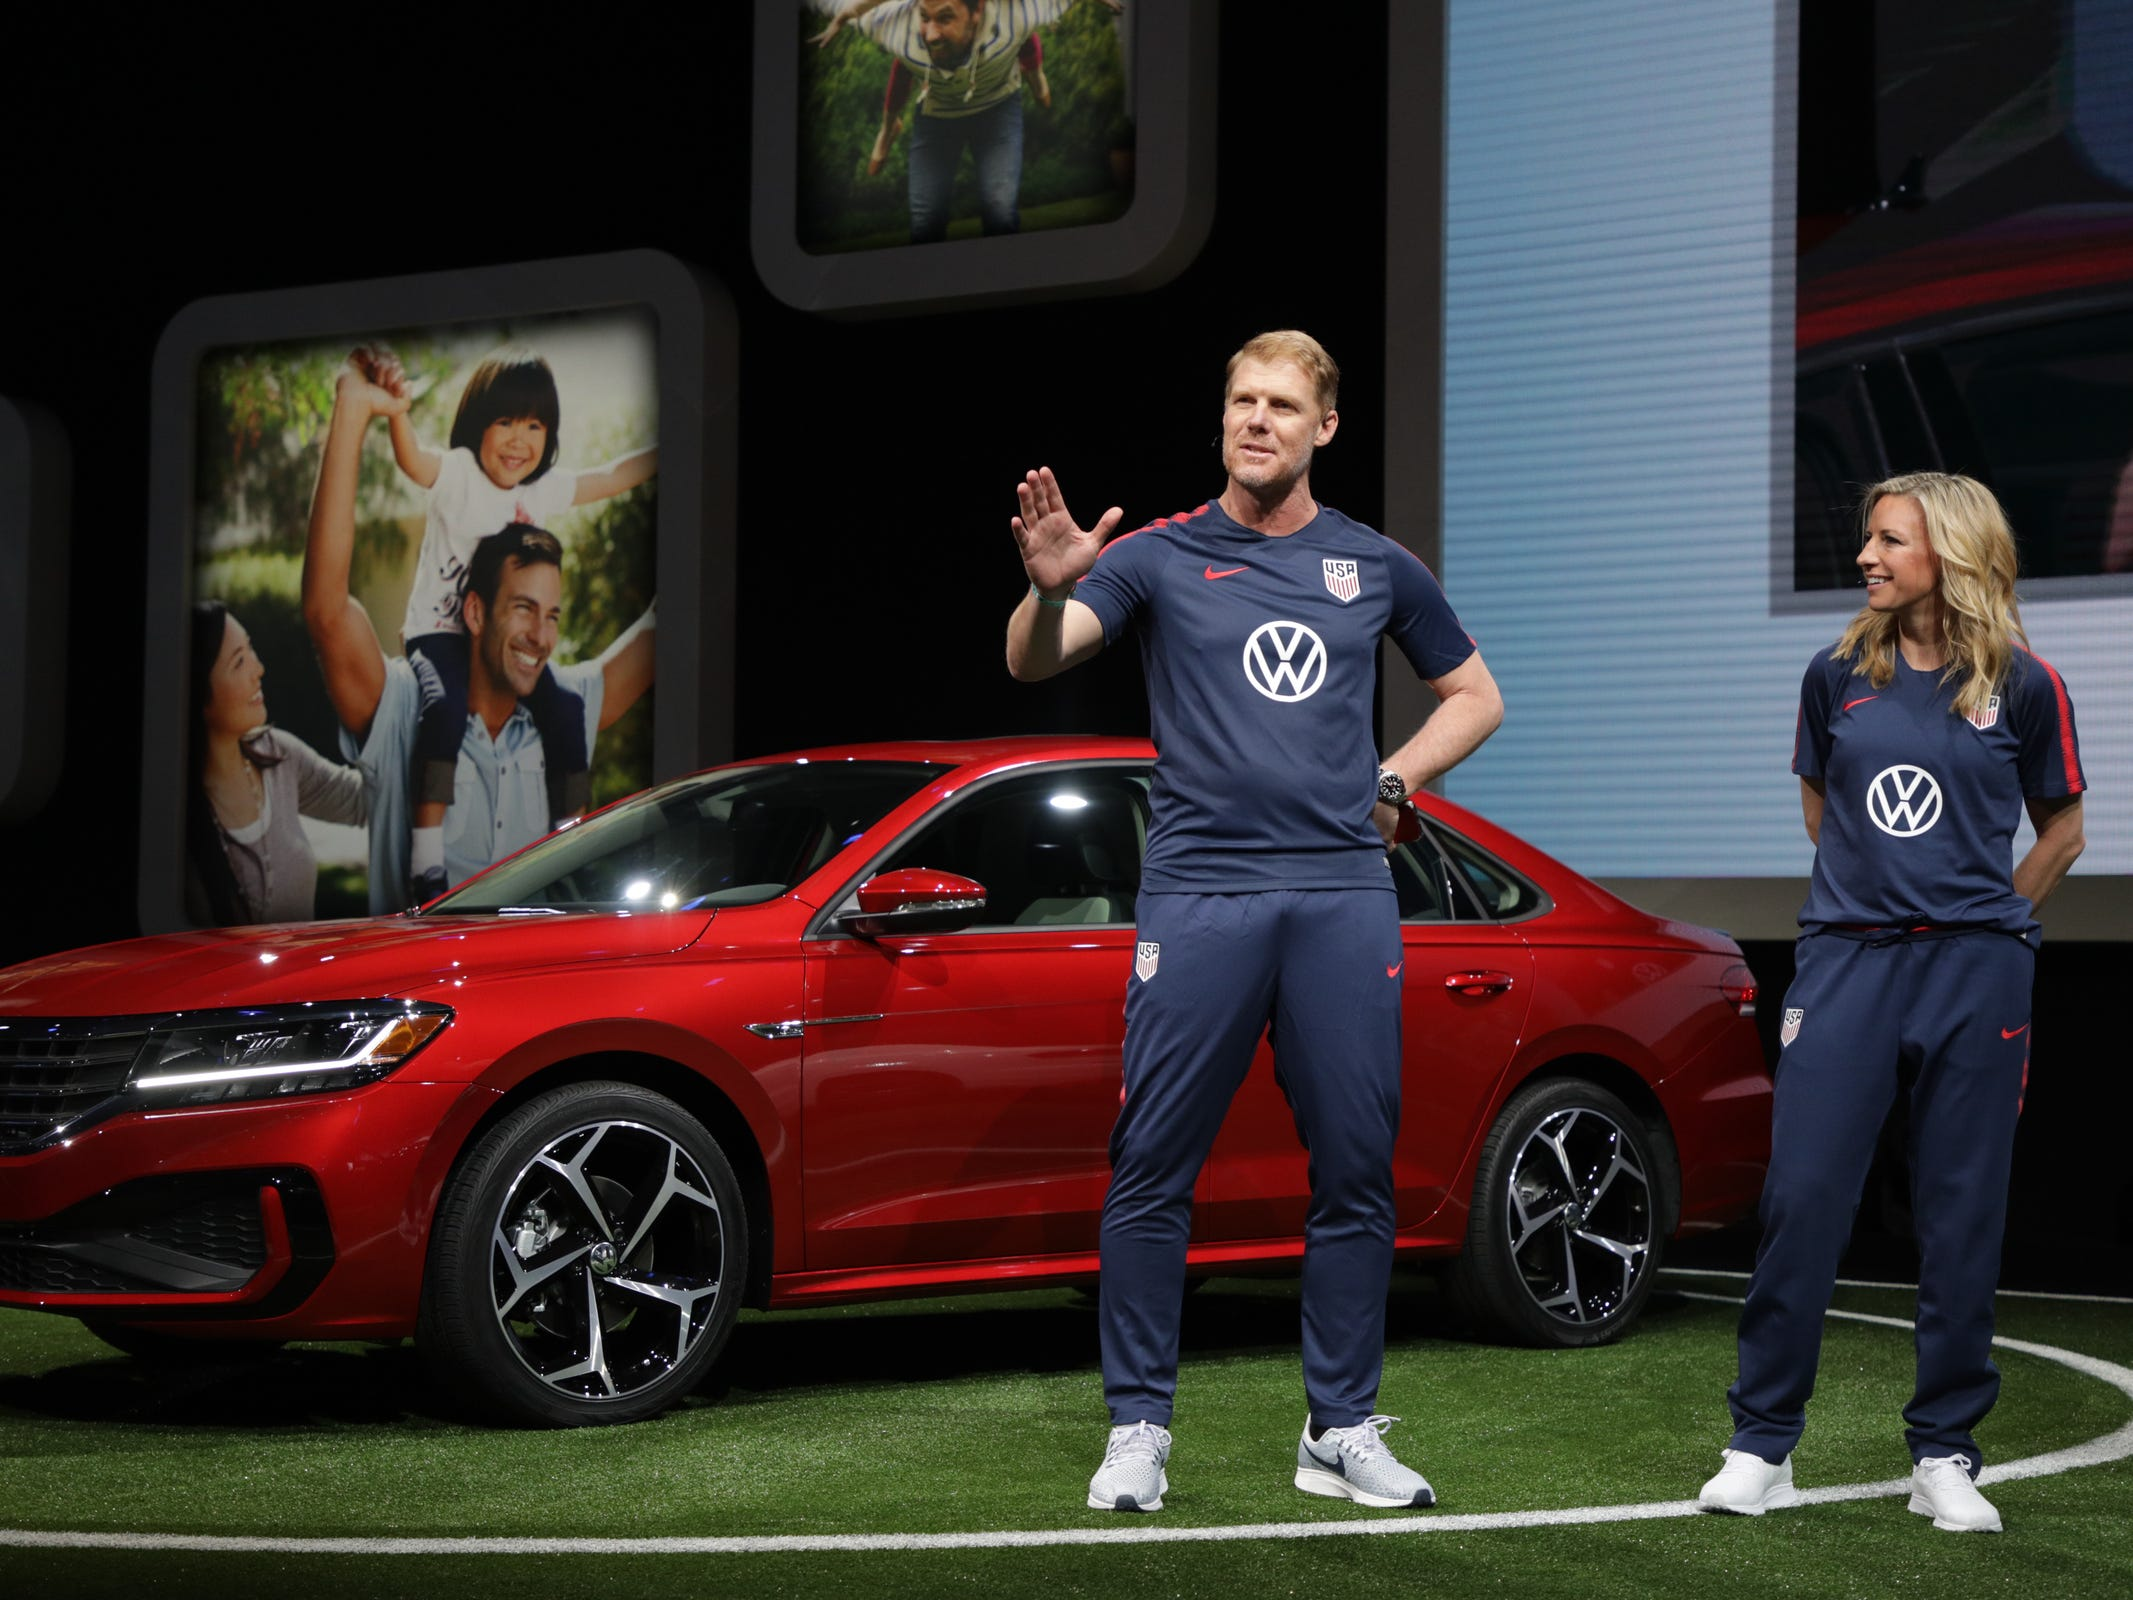 Alexi Lalas, left and Aly Wagner talk about the new partnership of U.S. Soccer and Volkswagen America after the 2020 Volkswagen Passat is revealed at the 2019 North American International Auto Show held at Cobo Center in downtown Detroit on Monday, Jan. 14, 2019.